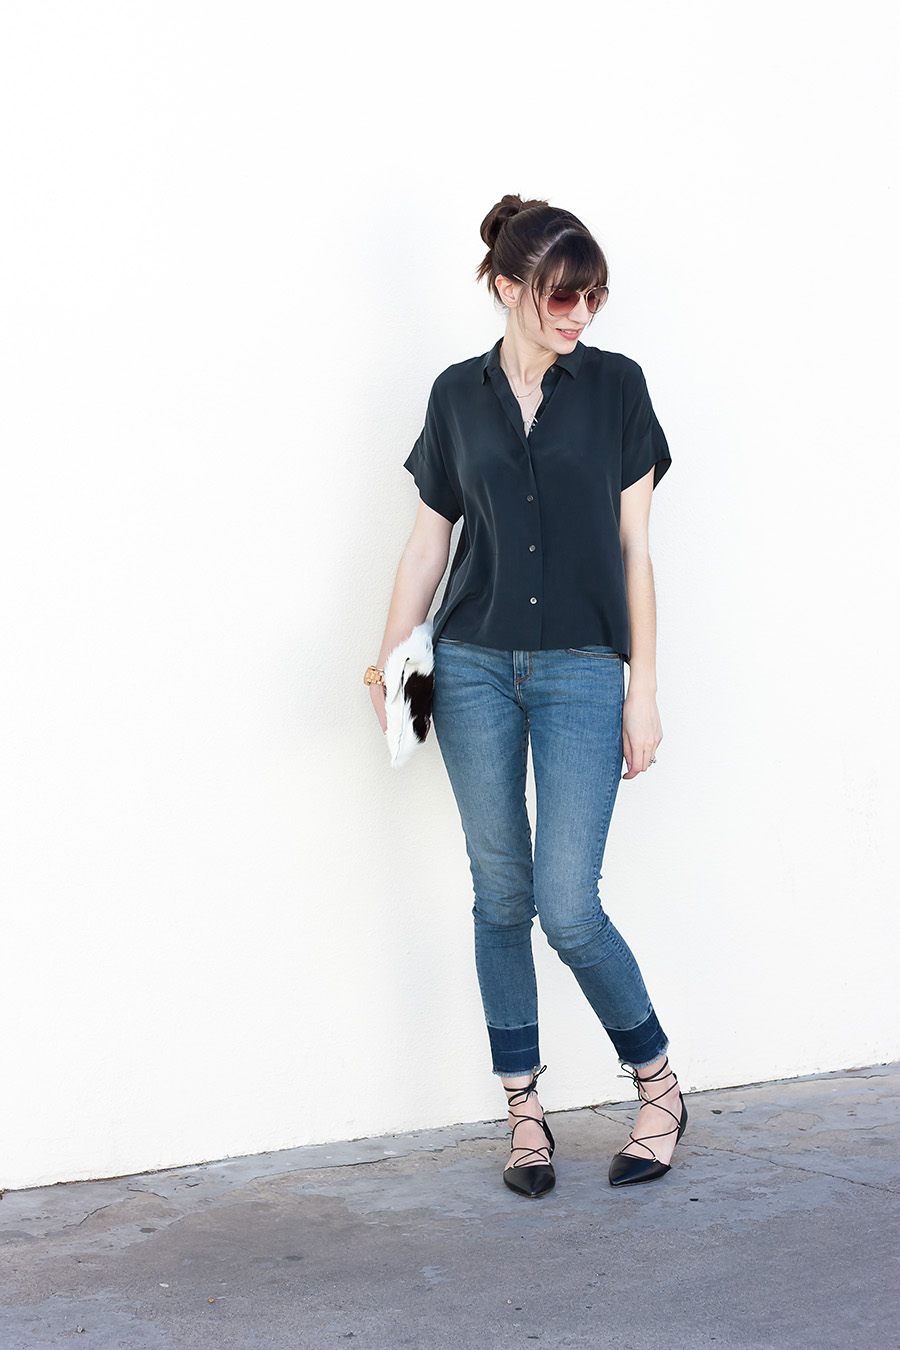 Everlane Silk Shirt, Lace Up Flats